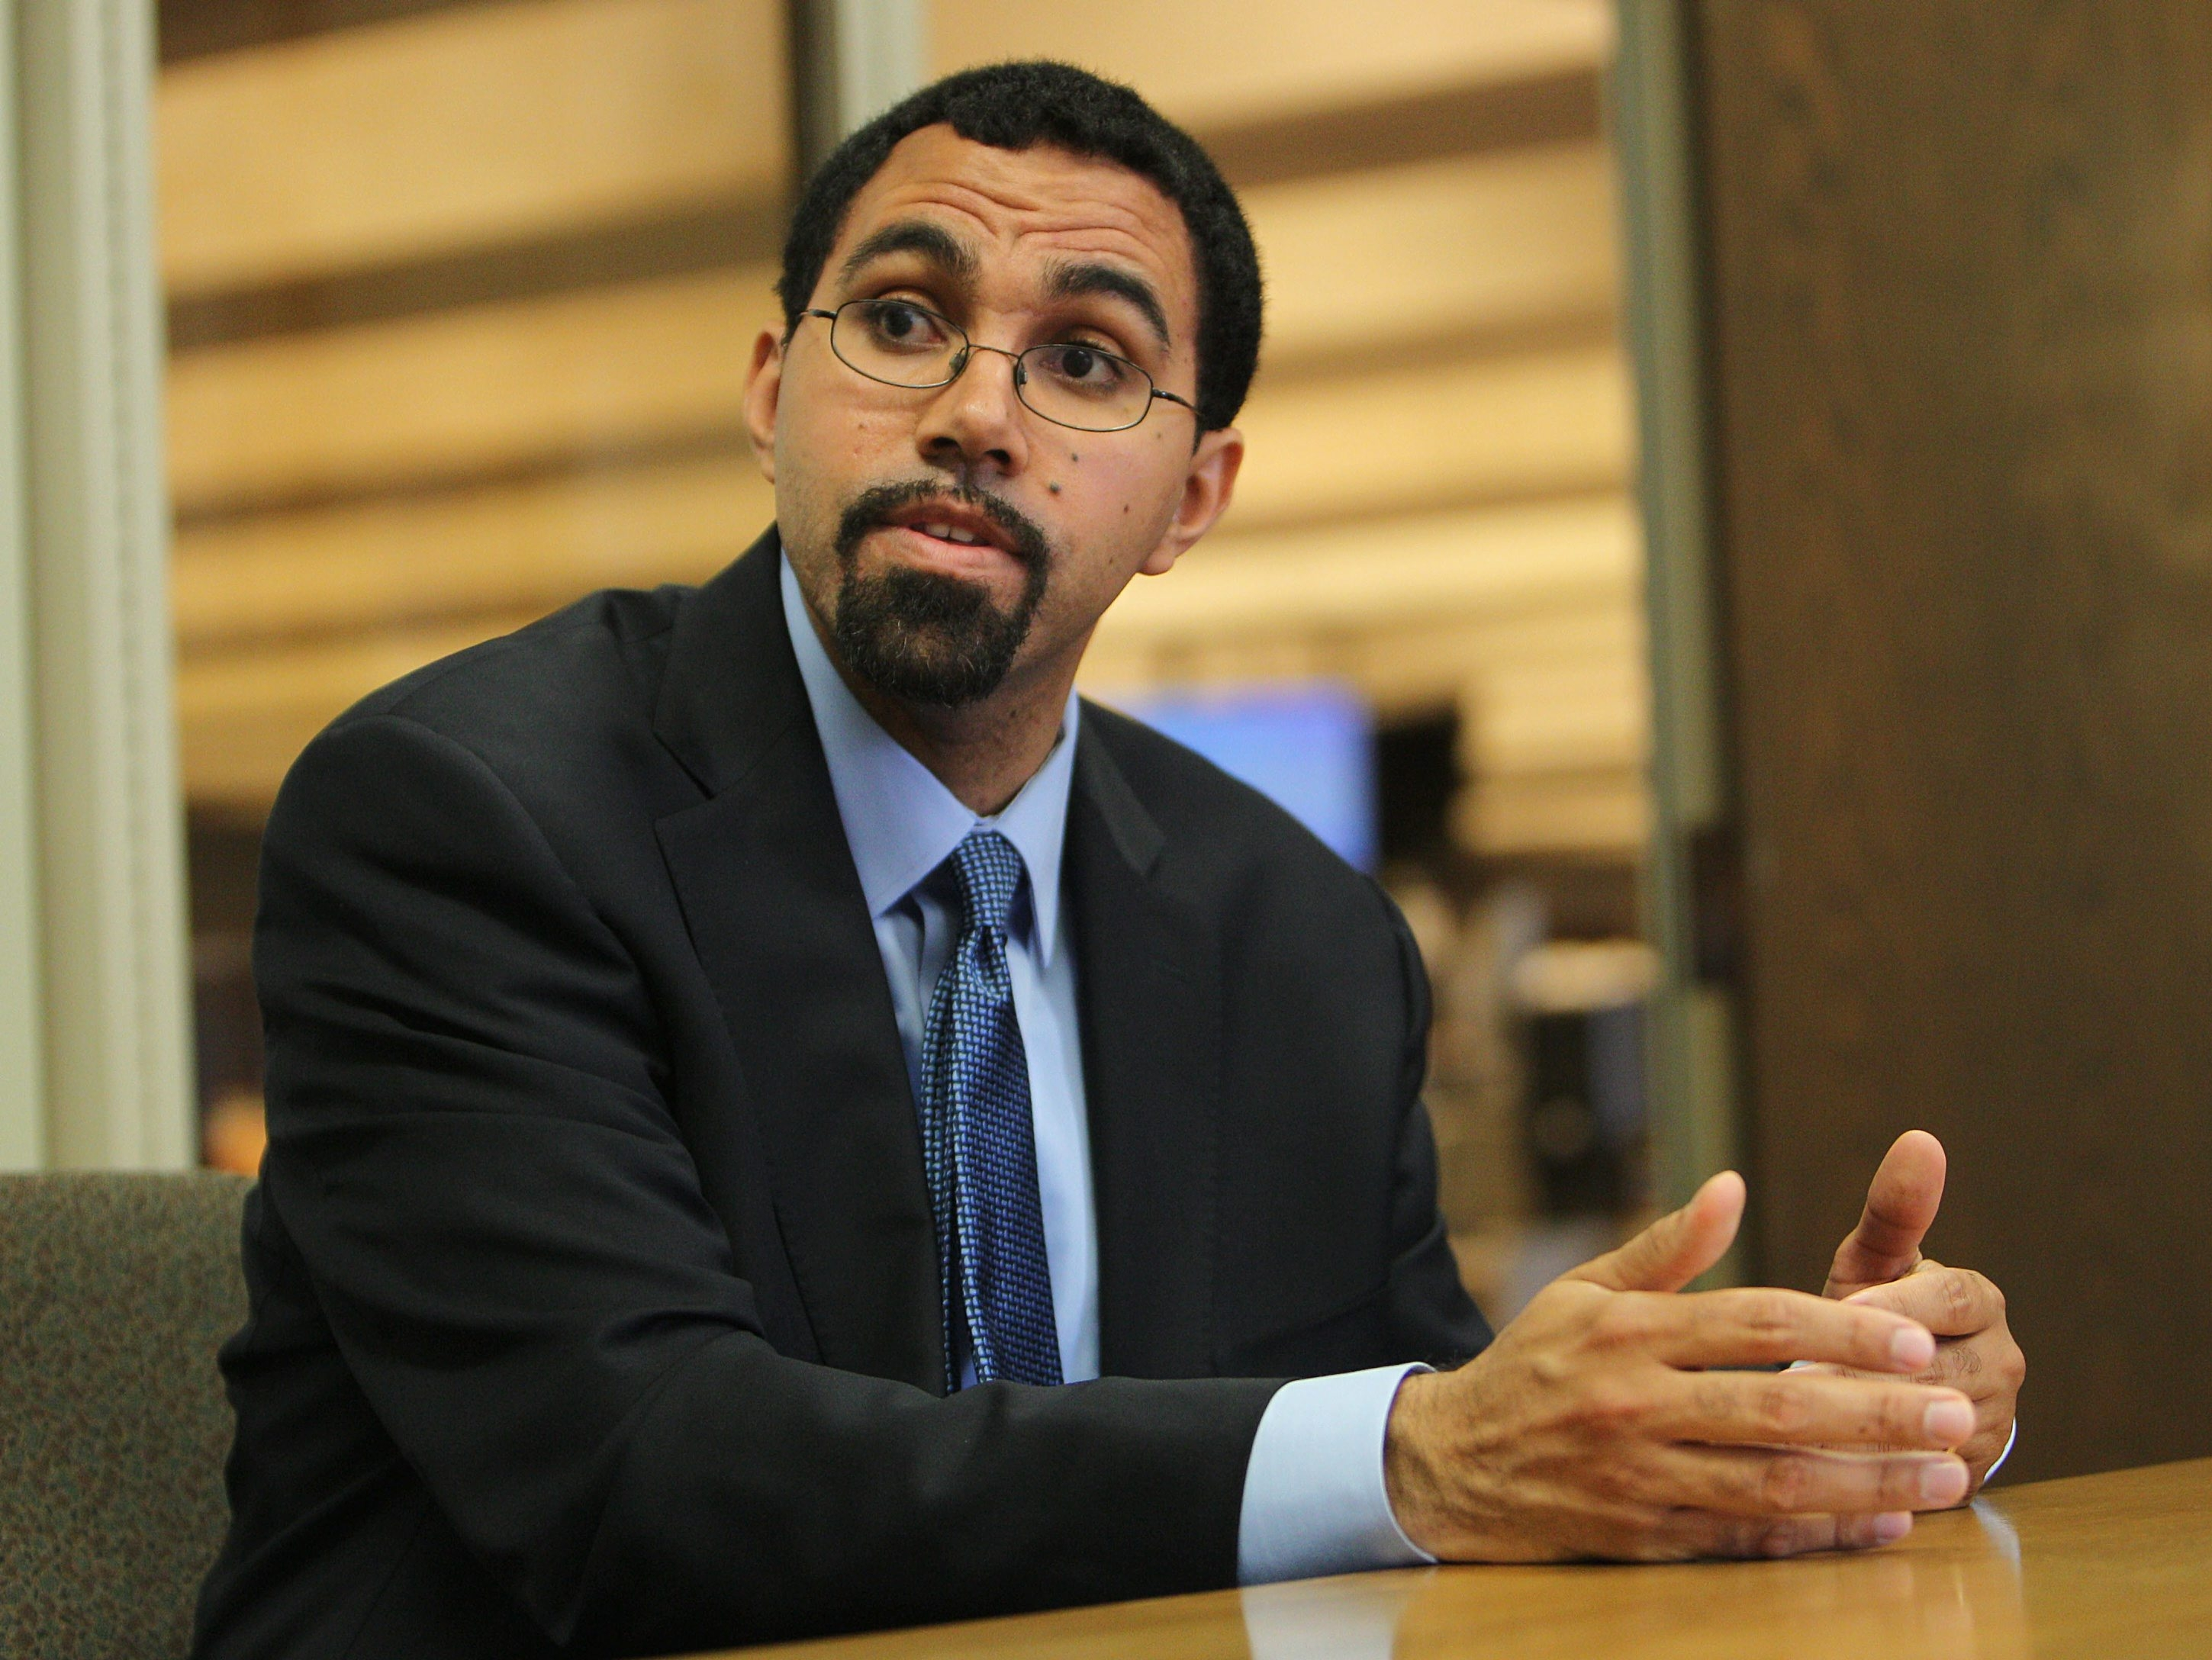 State Education Commissioner John B. King Jr.'s proposal to streamline testing was welcomed by many school districts.